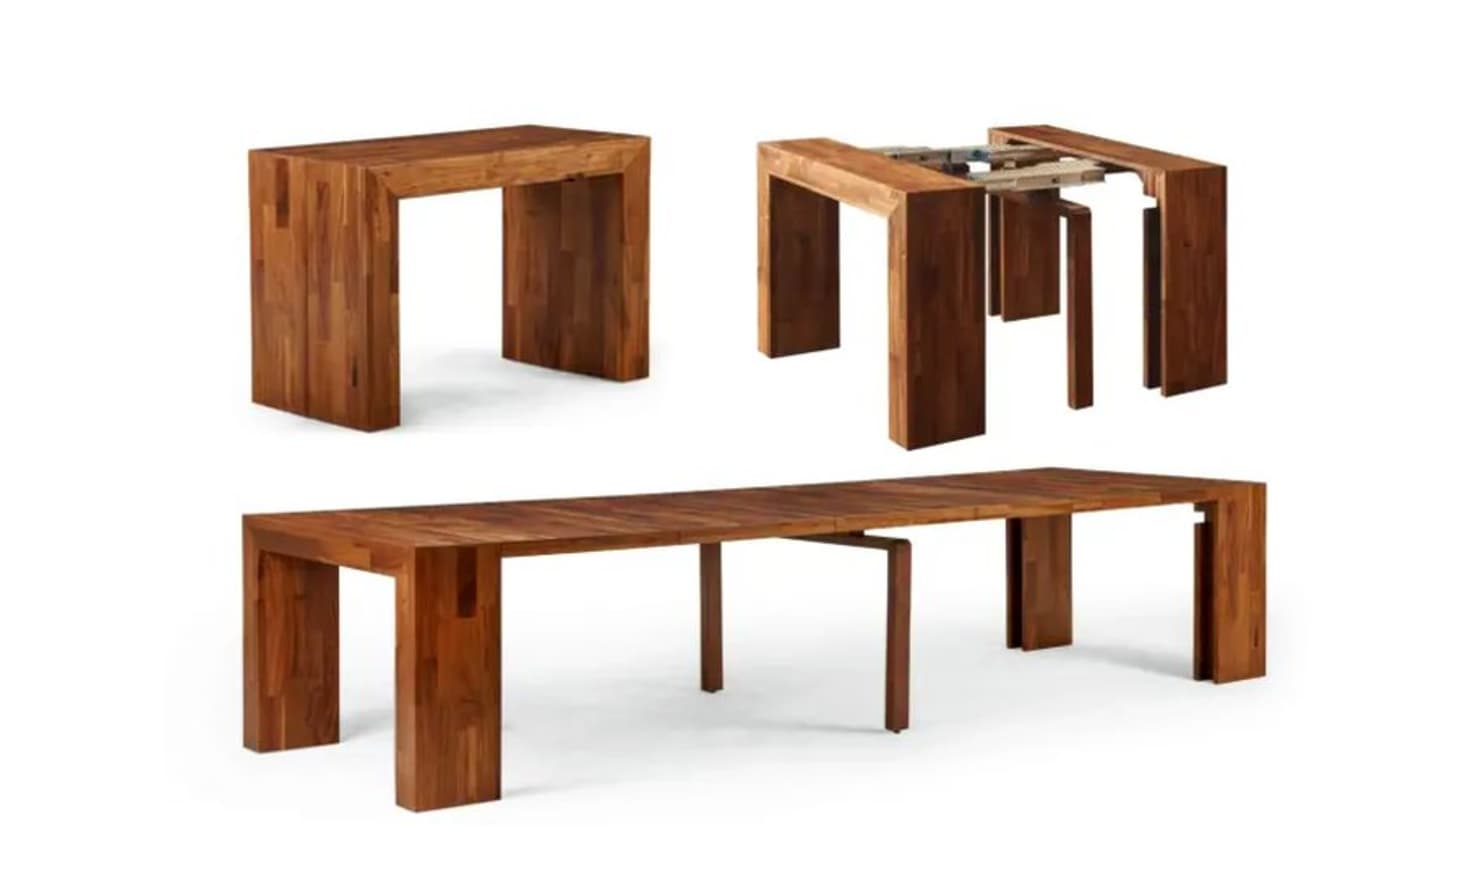 dining room table expandable   The Best Expandable Dining Room Tables for Small Spaces ...